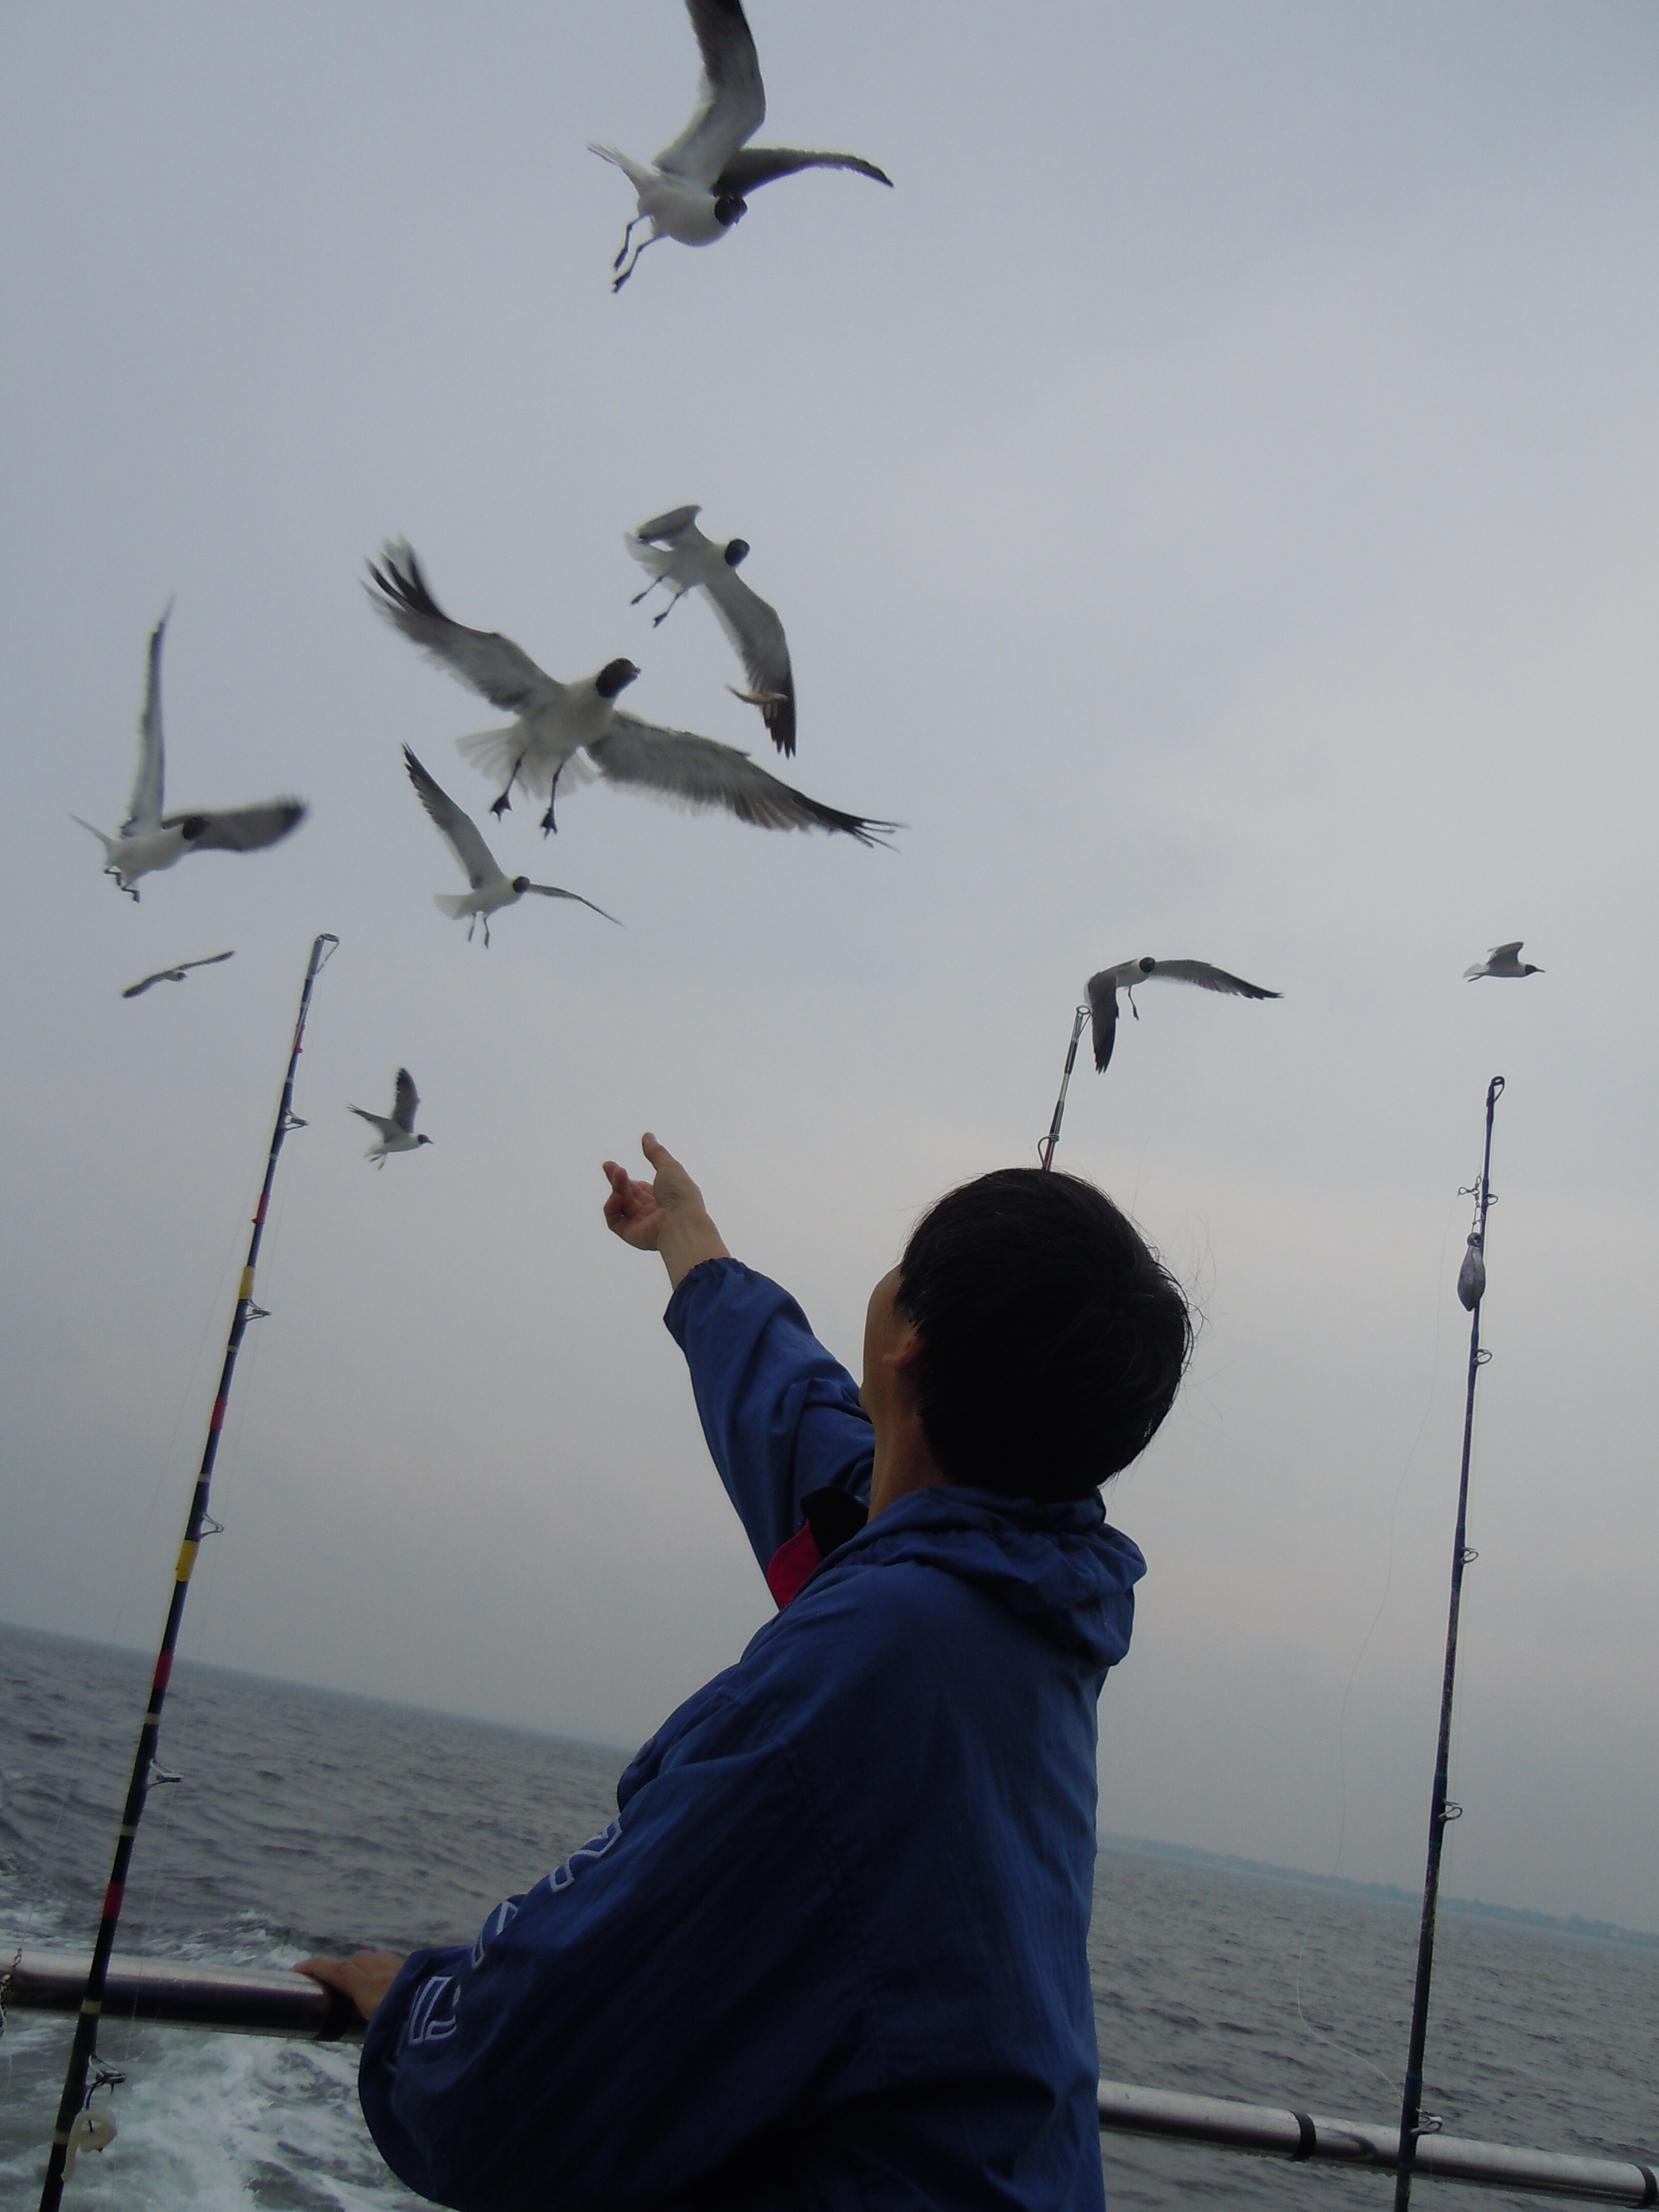 Feeding the Gulls while Fishing = Unwanted Attention